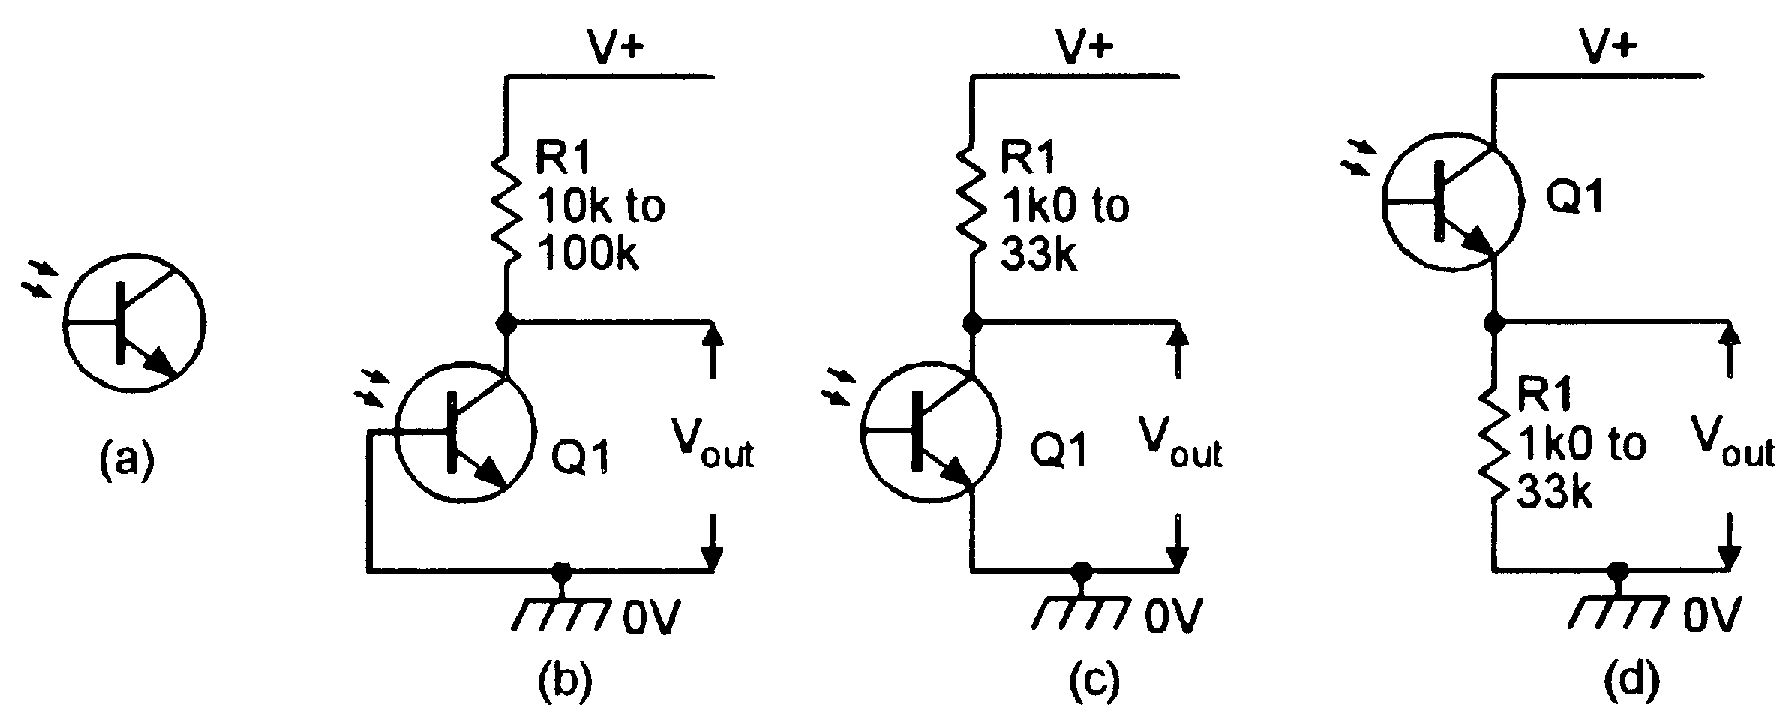 Light Sensitive Circuits Nuts Volts Magazine Make A Simple Ic 741 Smoke Detector Circuit Schematic Diagram Phototransistors